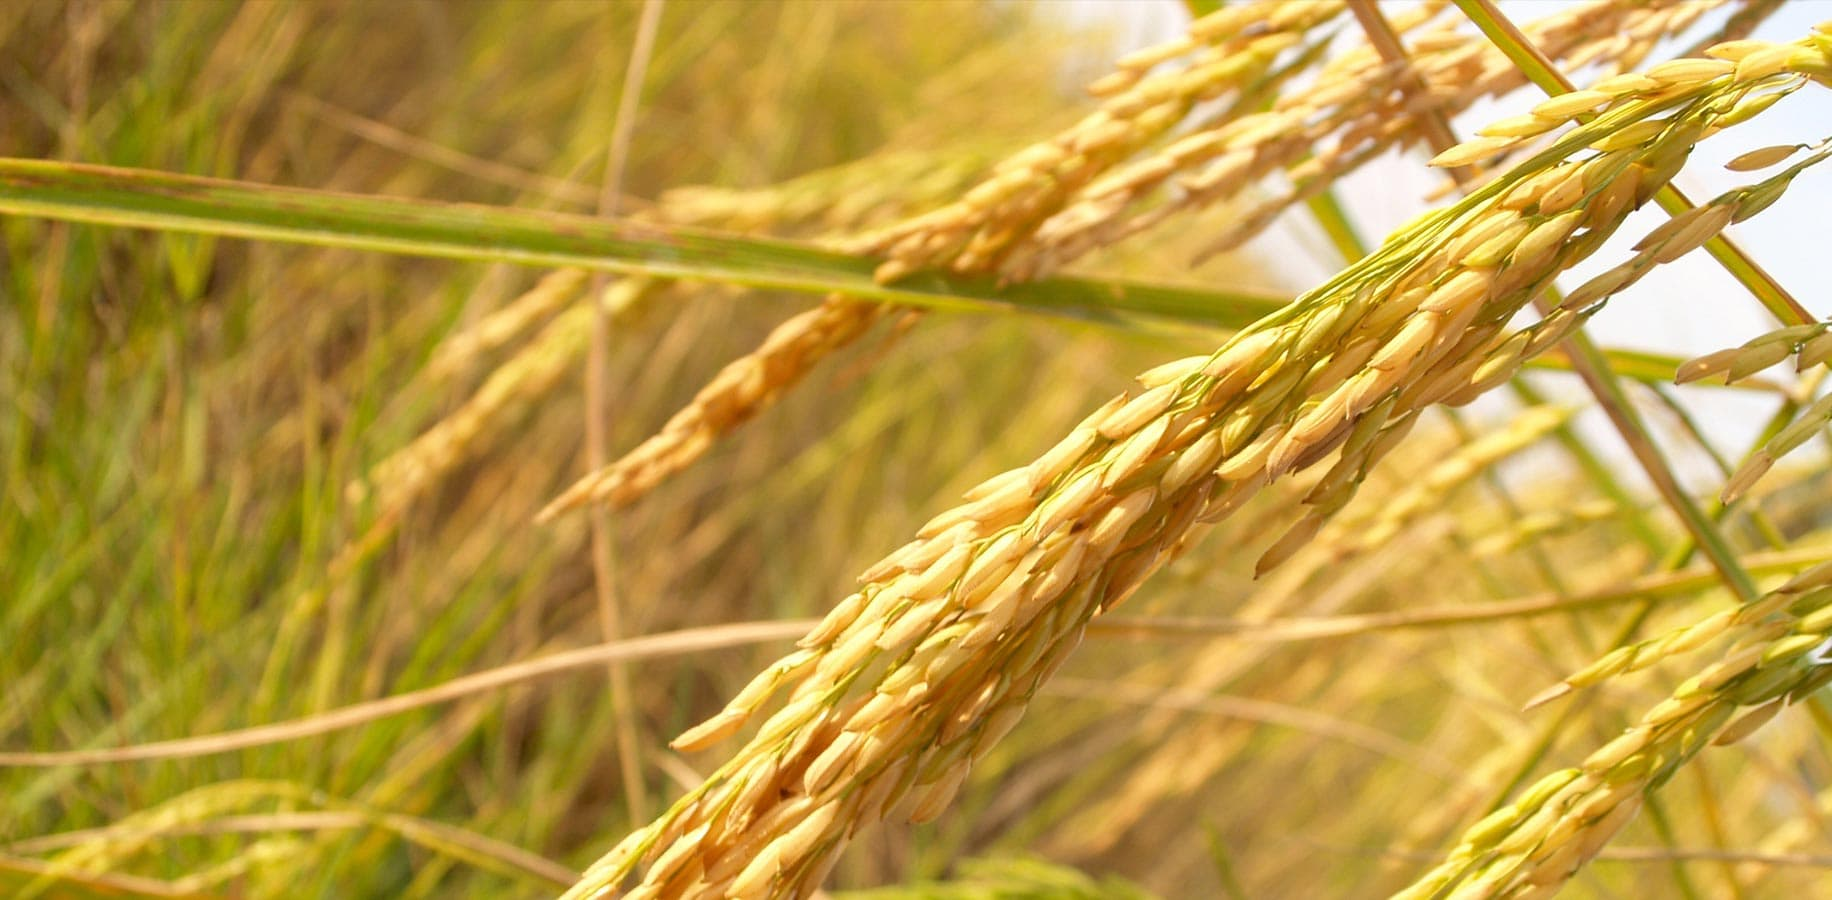 Close of shot of a rice crop